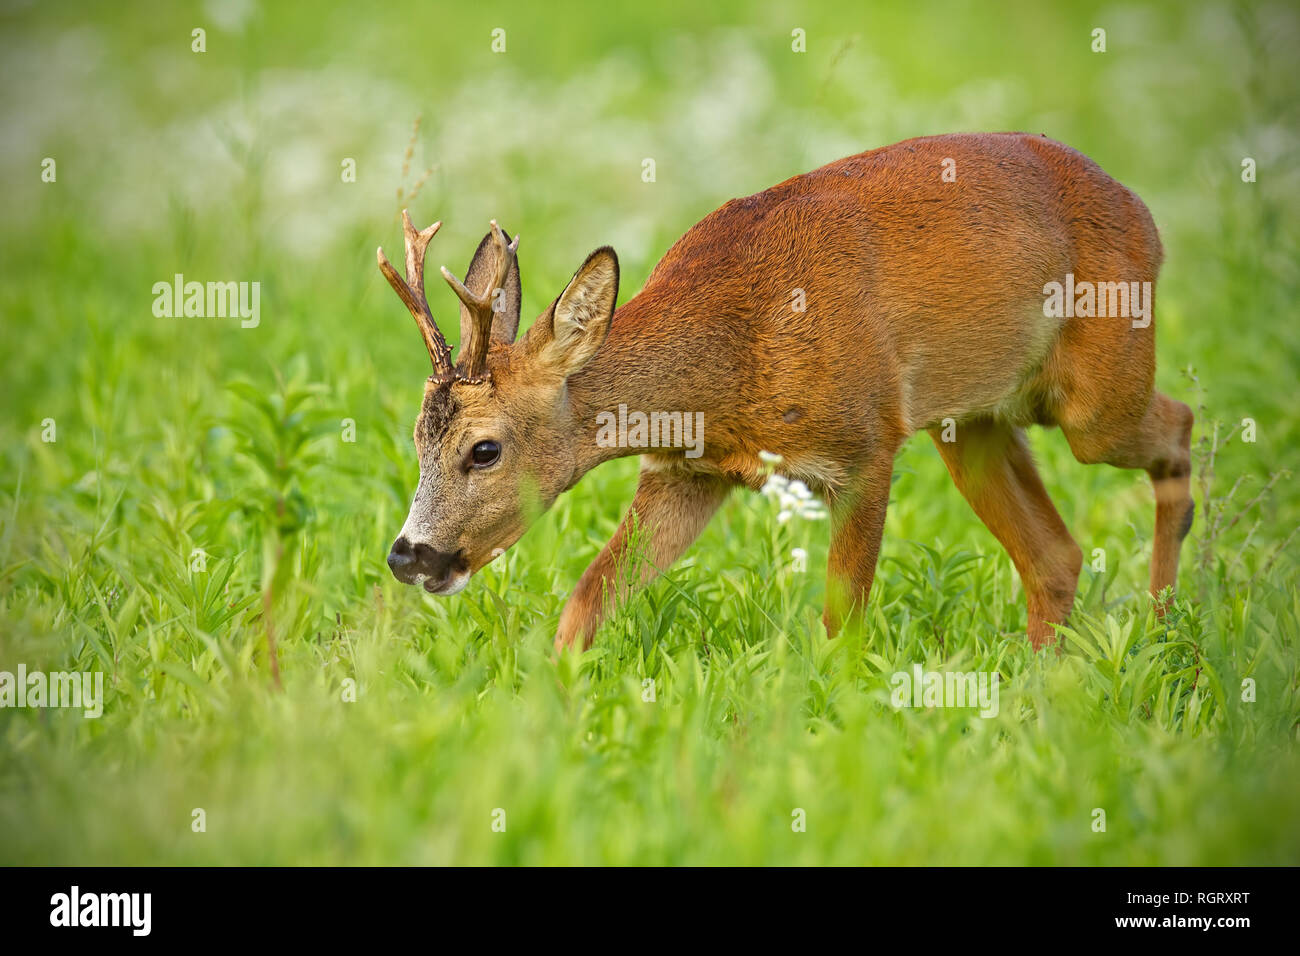 Young roe deer walking on hay field chewing peacefully in summer - Stock Image